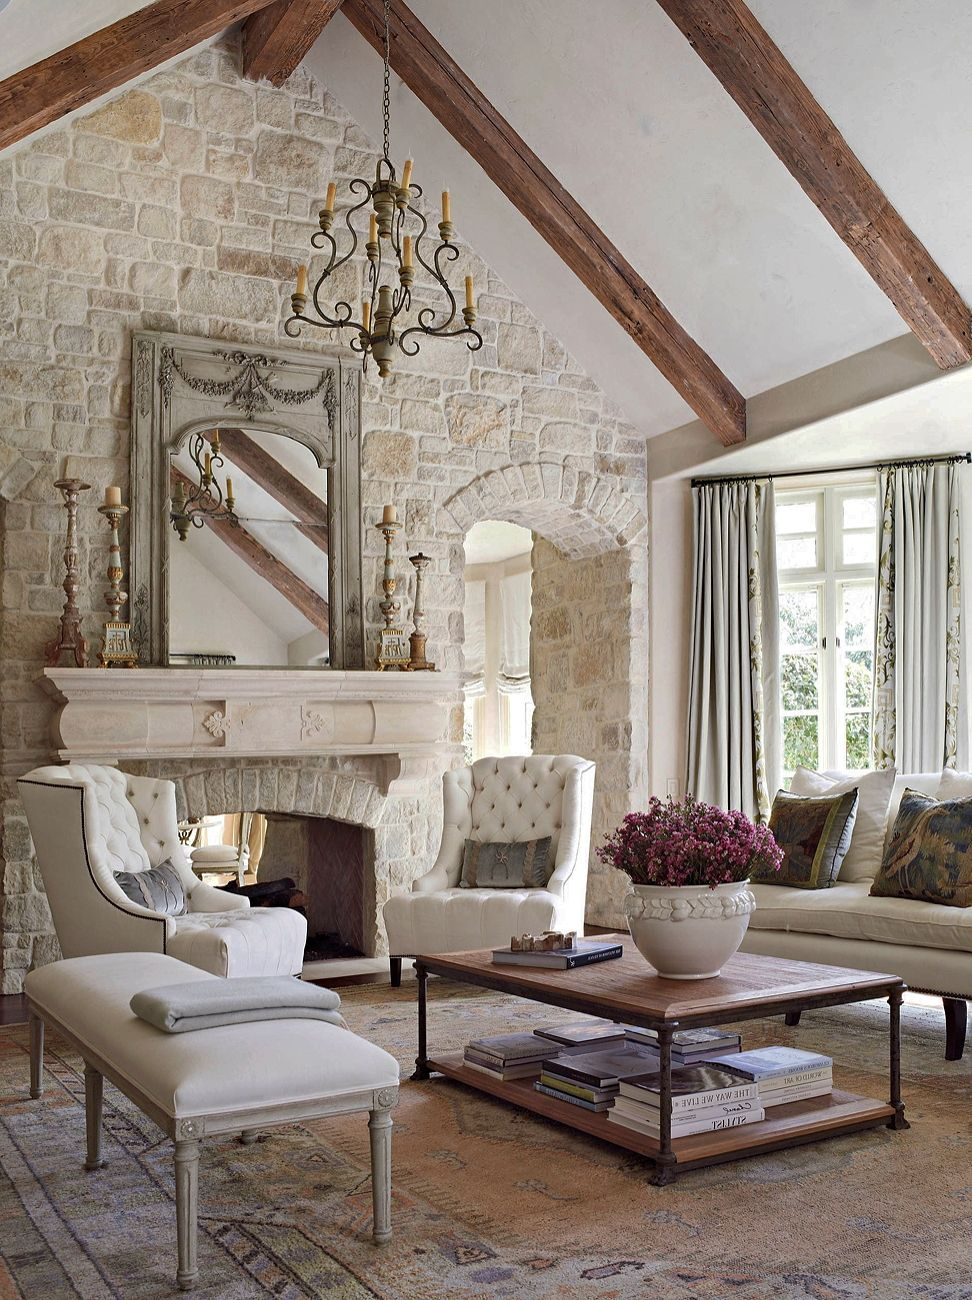 30 Beautiful French Country Living Room Decor Ideas To Copy Asap In 2020 French Country Decorating Living Room Country Style Living Room French Country Living Room #rustic #country #decor #living #room